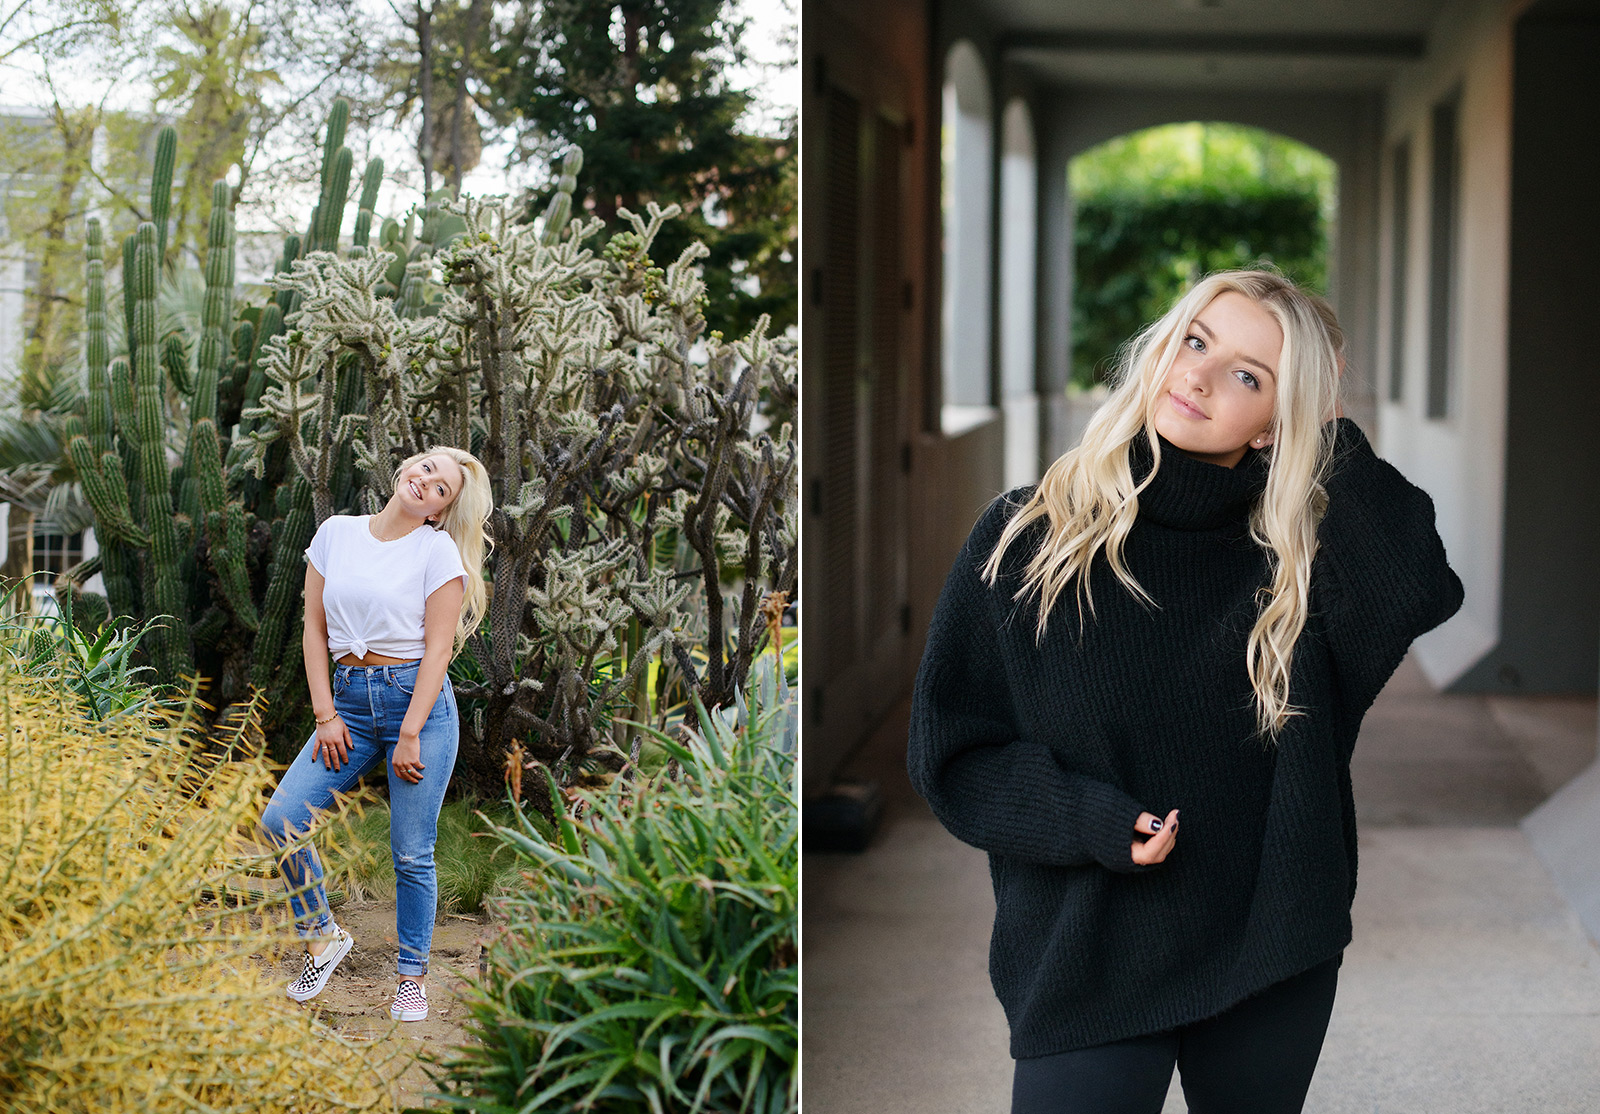 Senior portrait of blonde girl in cactus garden and State Capitol